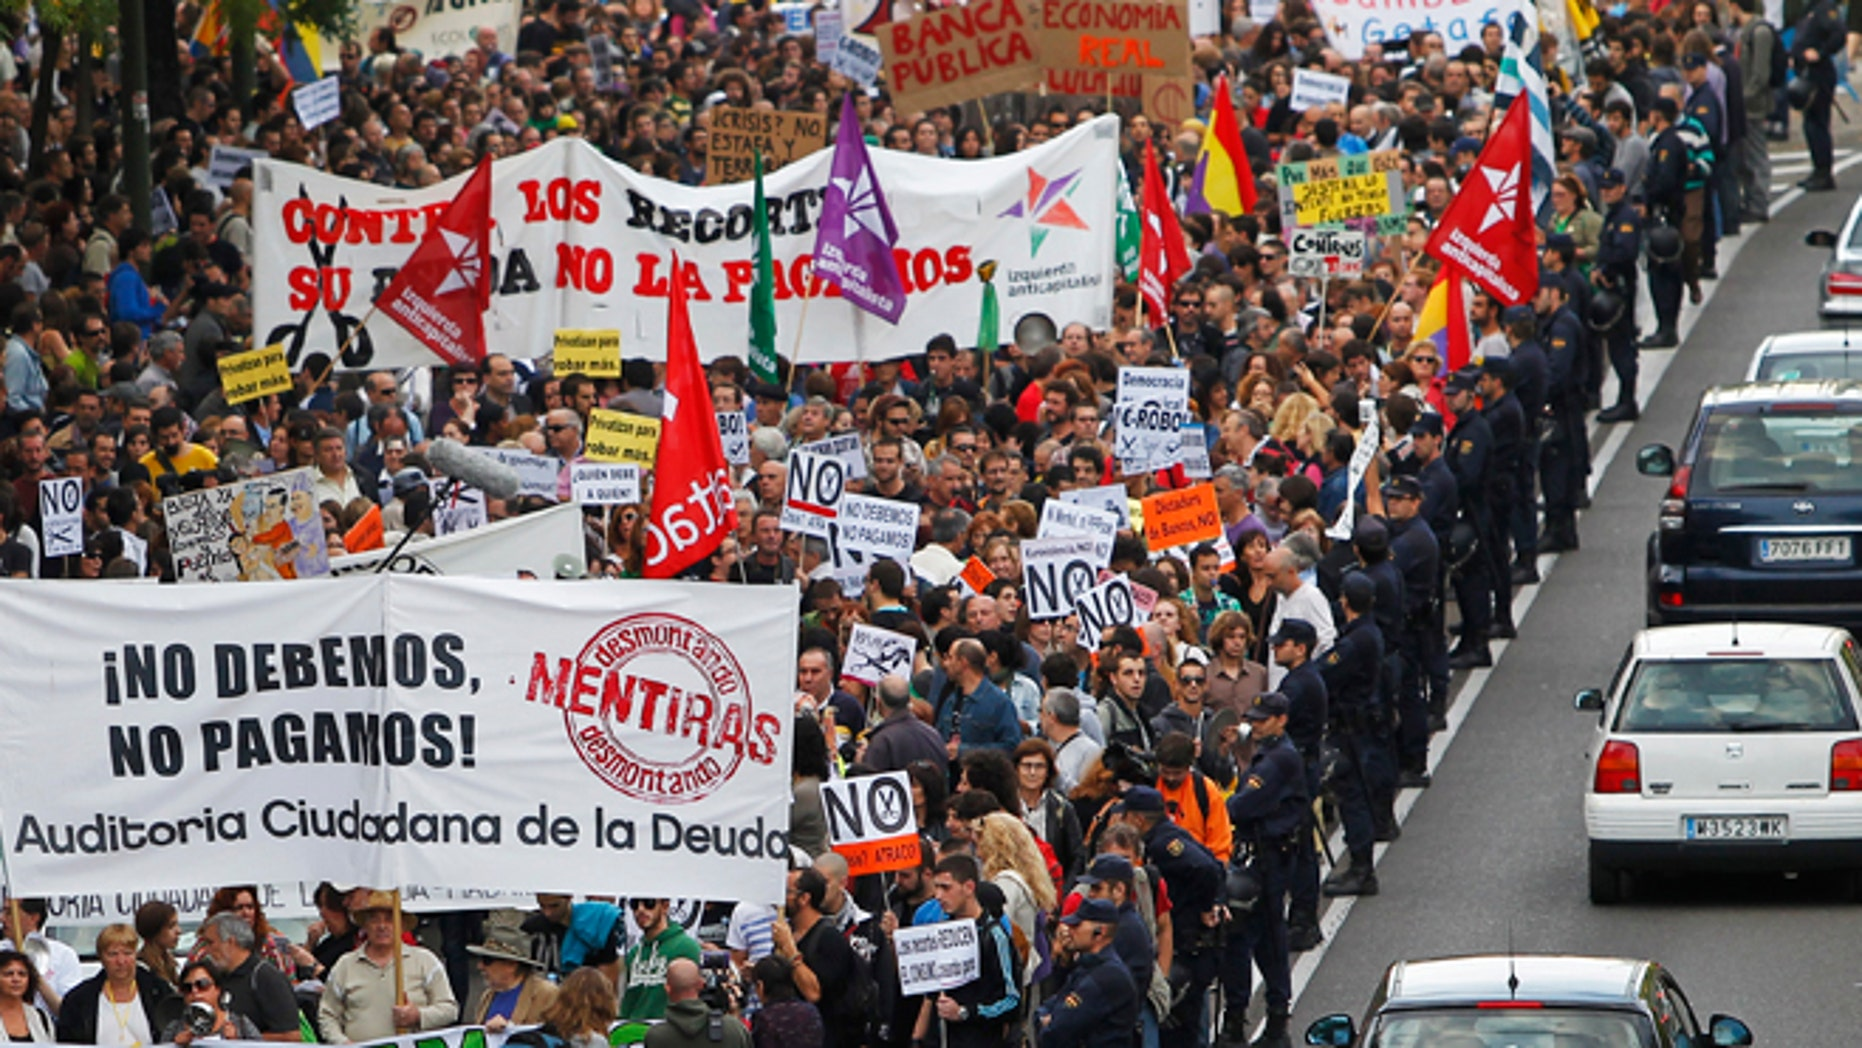 Protestor march as they hold banners reading âWe don't owe, we won't payâ against austerity measures announced by the Spanish government in Madrid, Spain, Saturday, Oct. 13, 2012. Several thousand people noisily banging pots and pans marched down Madrid's main north-to-south boulevard protesting the government's austerity measures. With unemployment nearing 25 percent, Spain has introduced biting austerity measure as well as financial and labor reforms in a desperate bid to lower its deficit and assuage investors' misgivings. (AP Photo/Andres Kudacki)